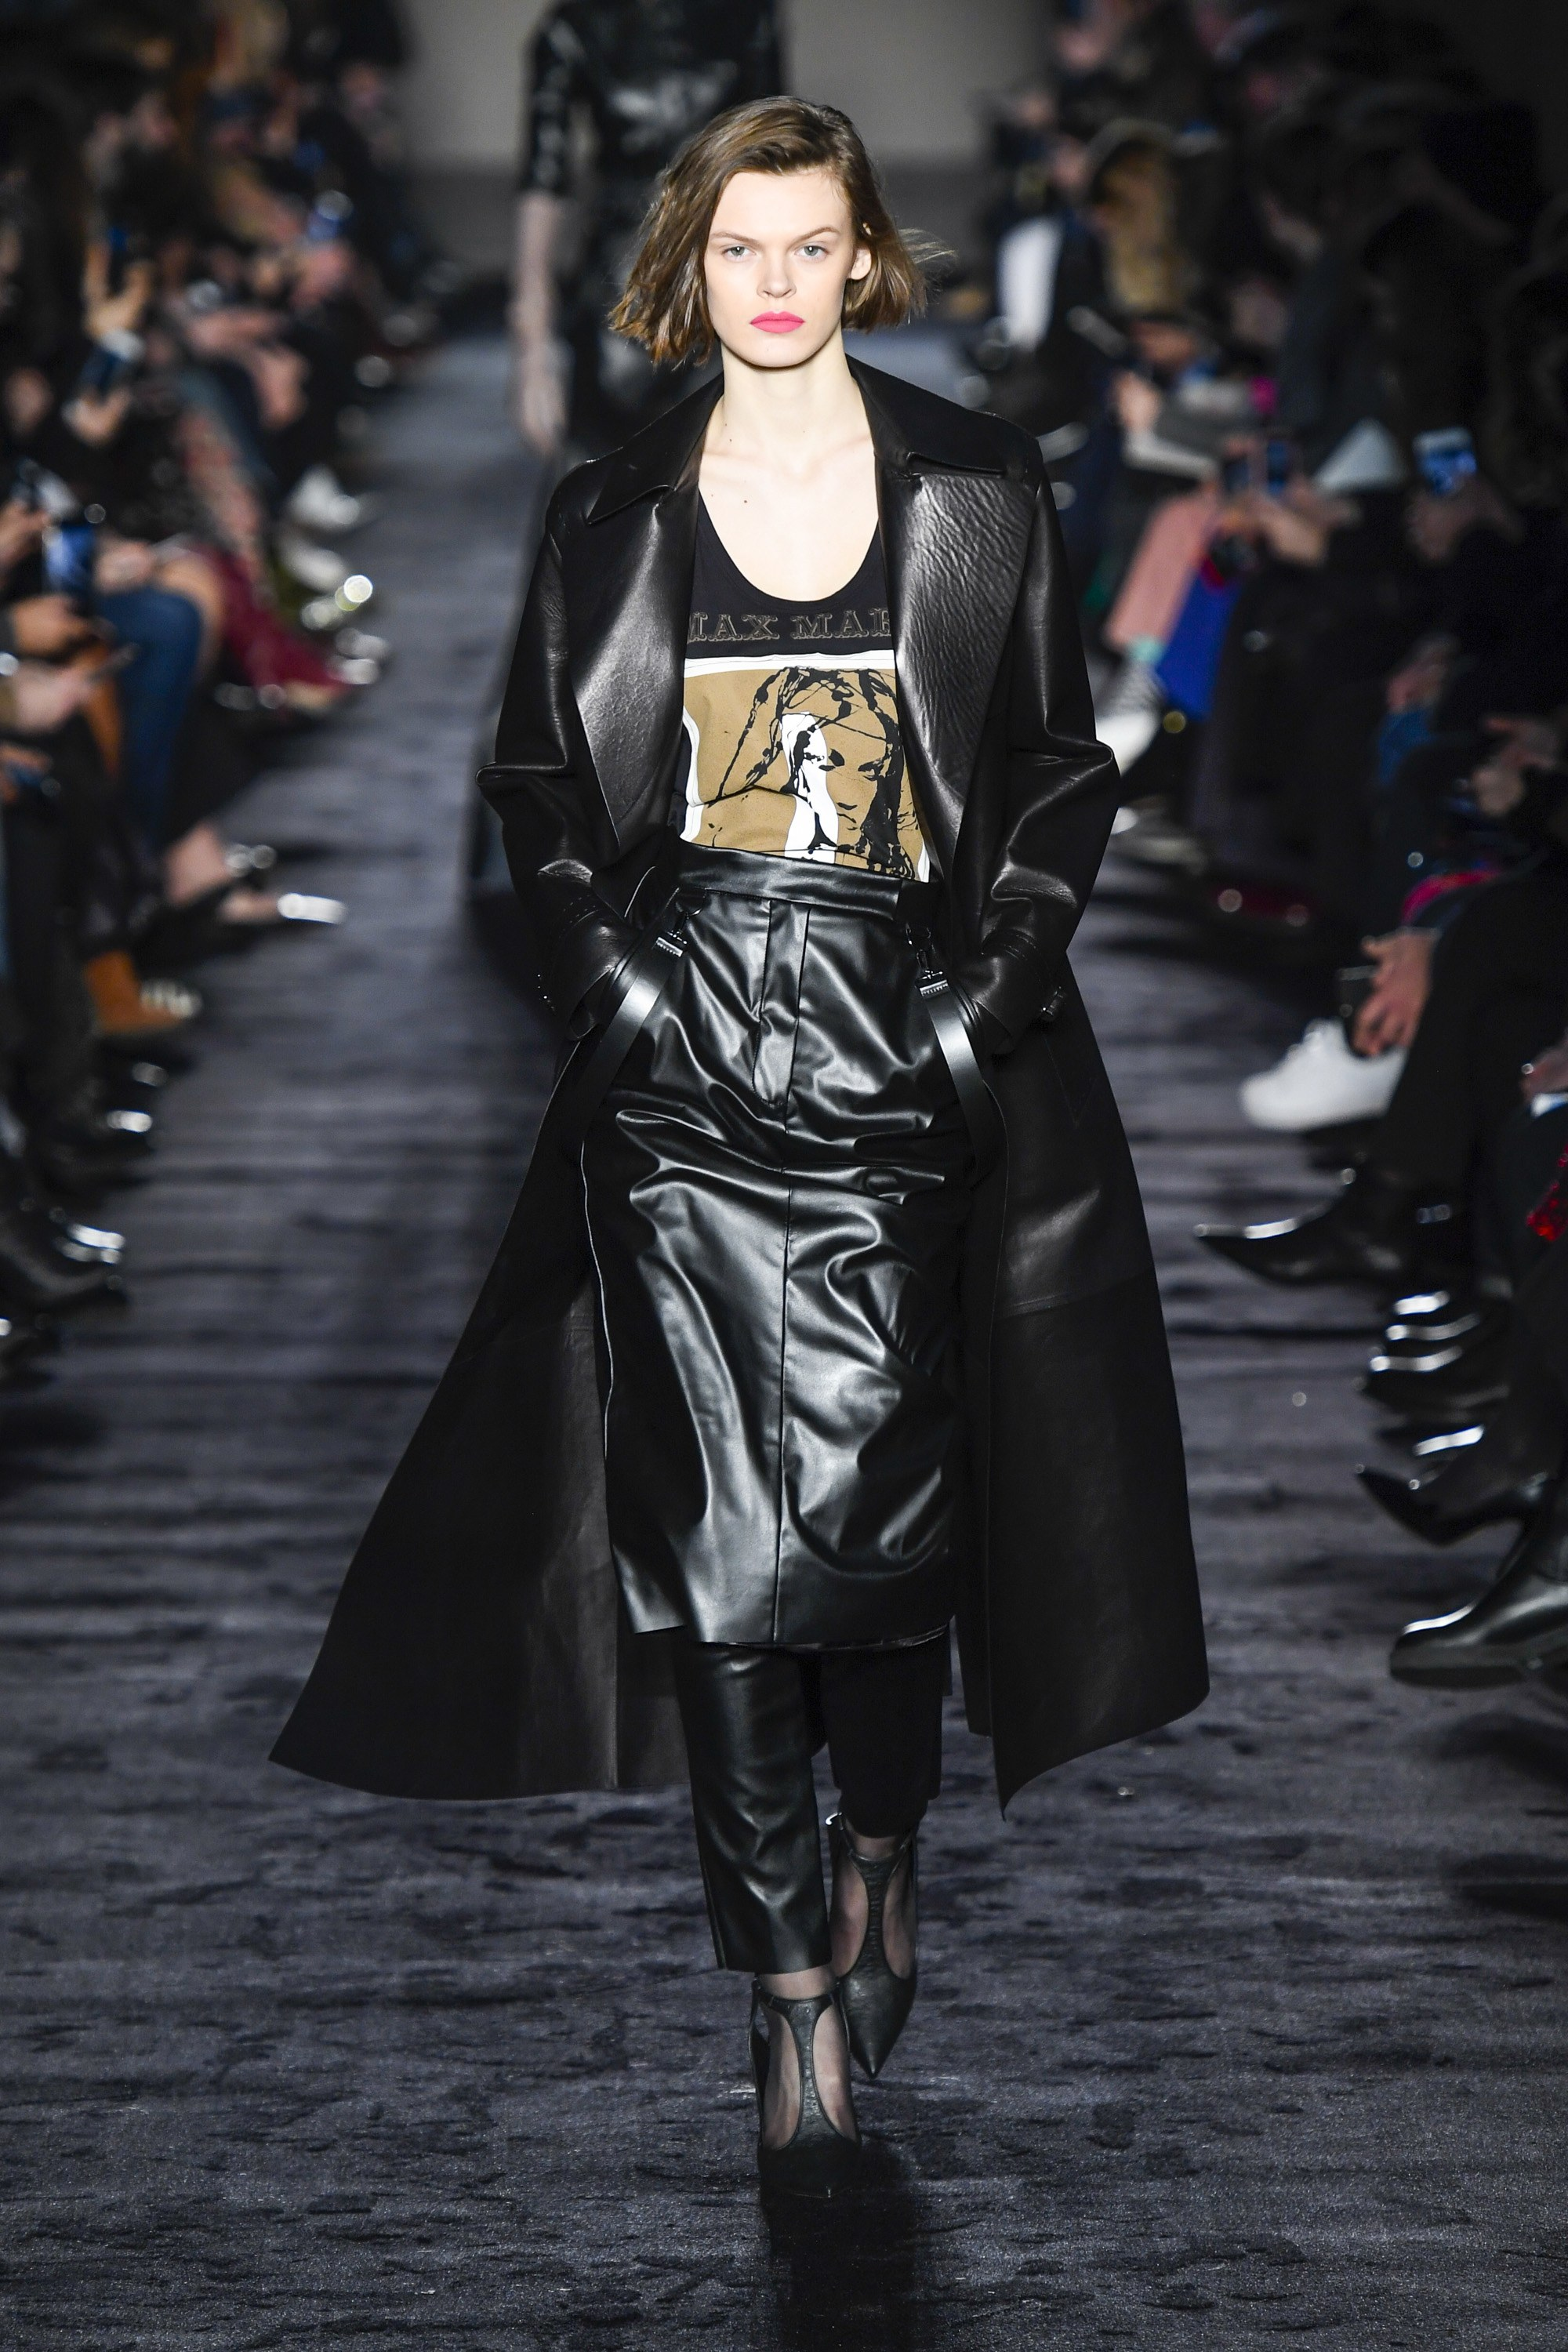 Max Mara Ready-to-Wear Fall 2018  moves onto leather again with pants layered under the skirt